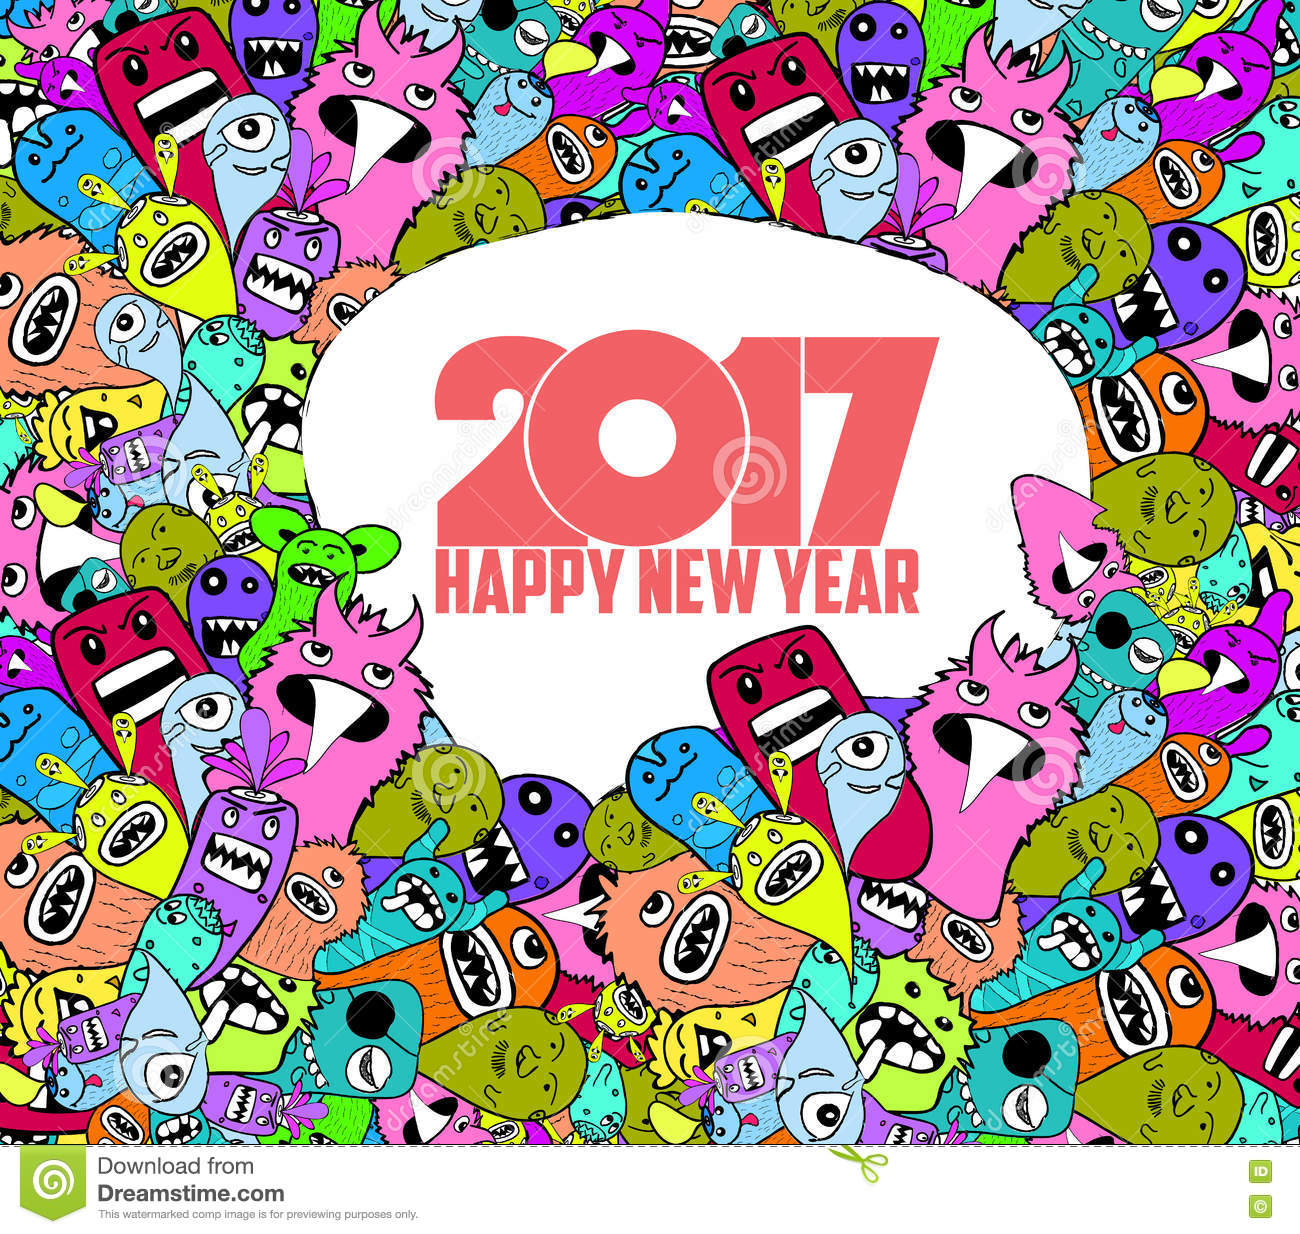 happy new year 2017 hand drawn monsters and cute doodle style